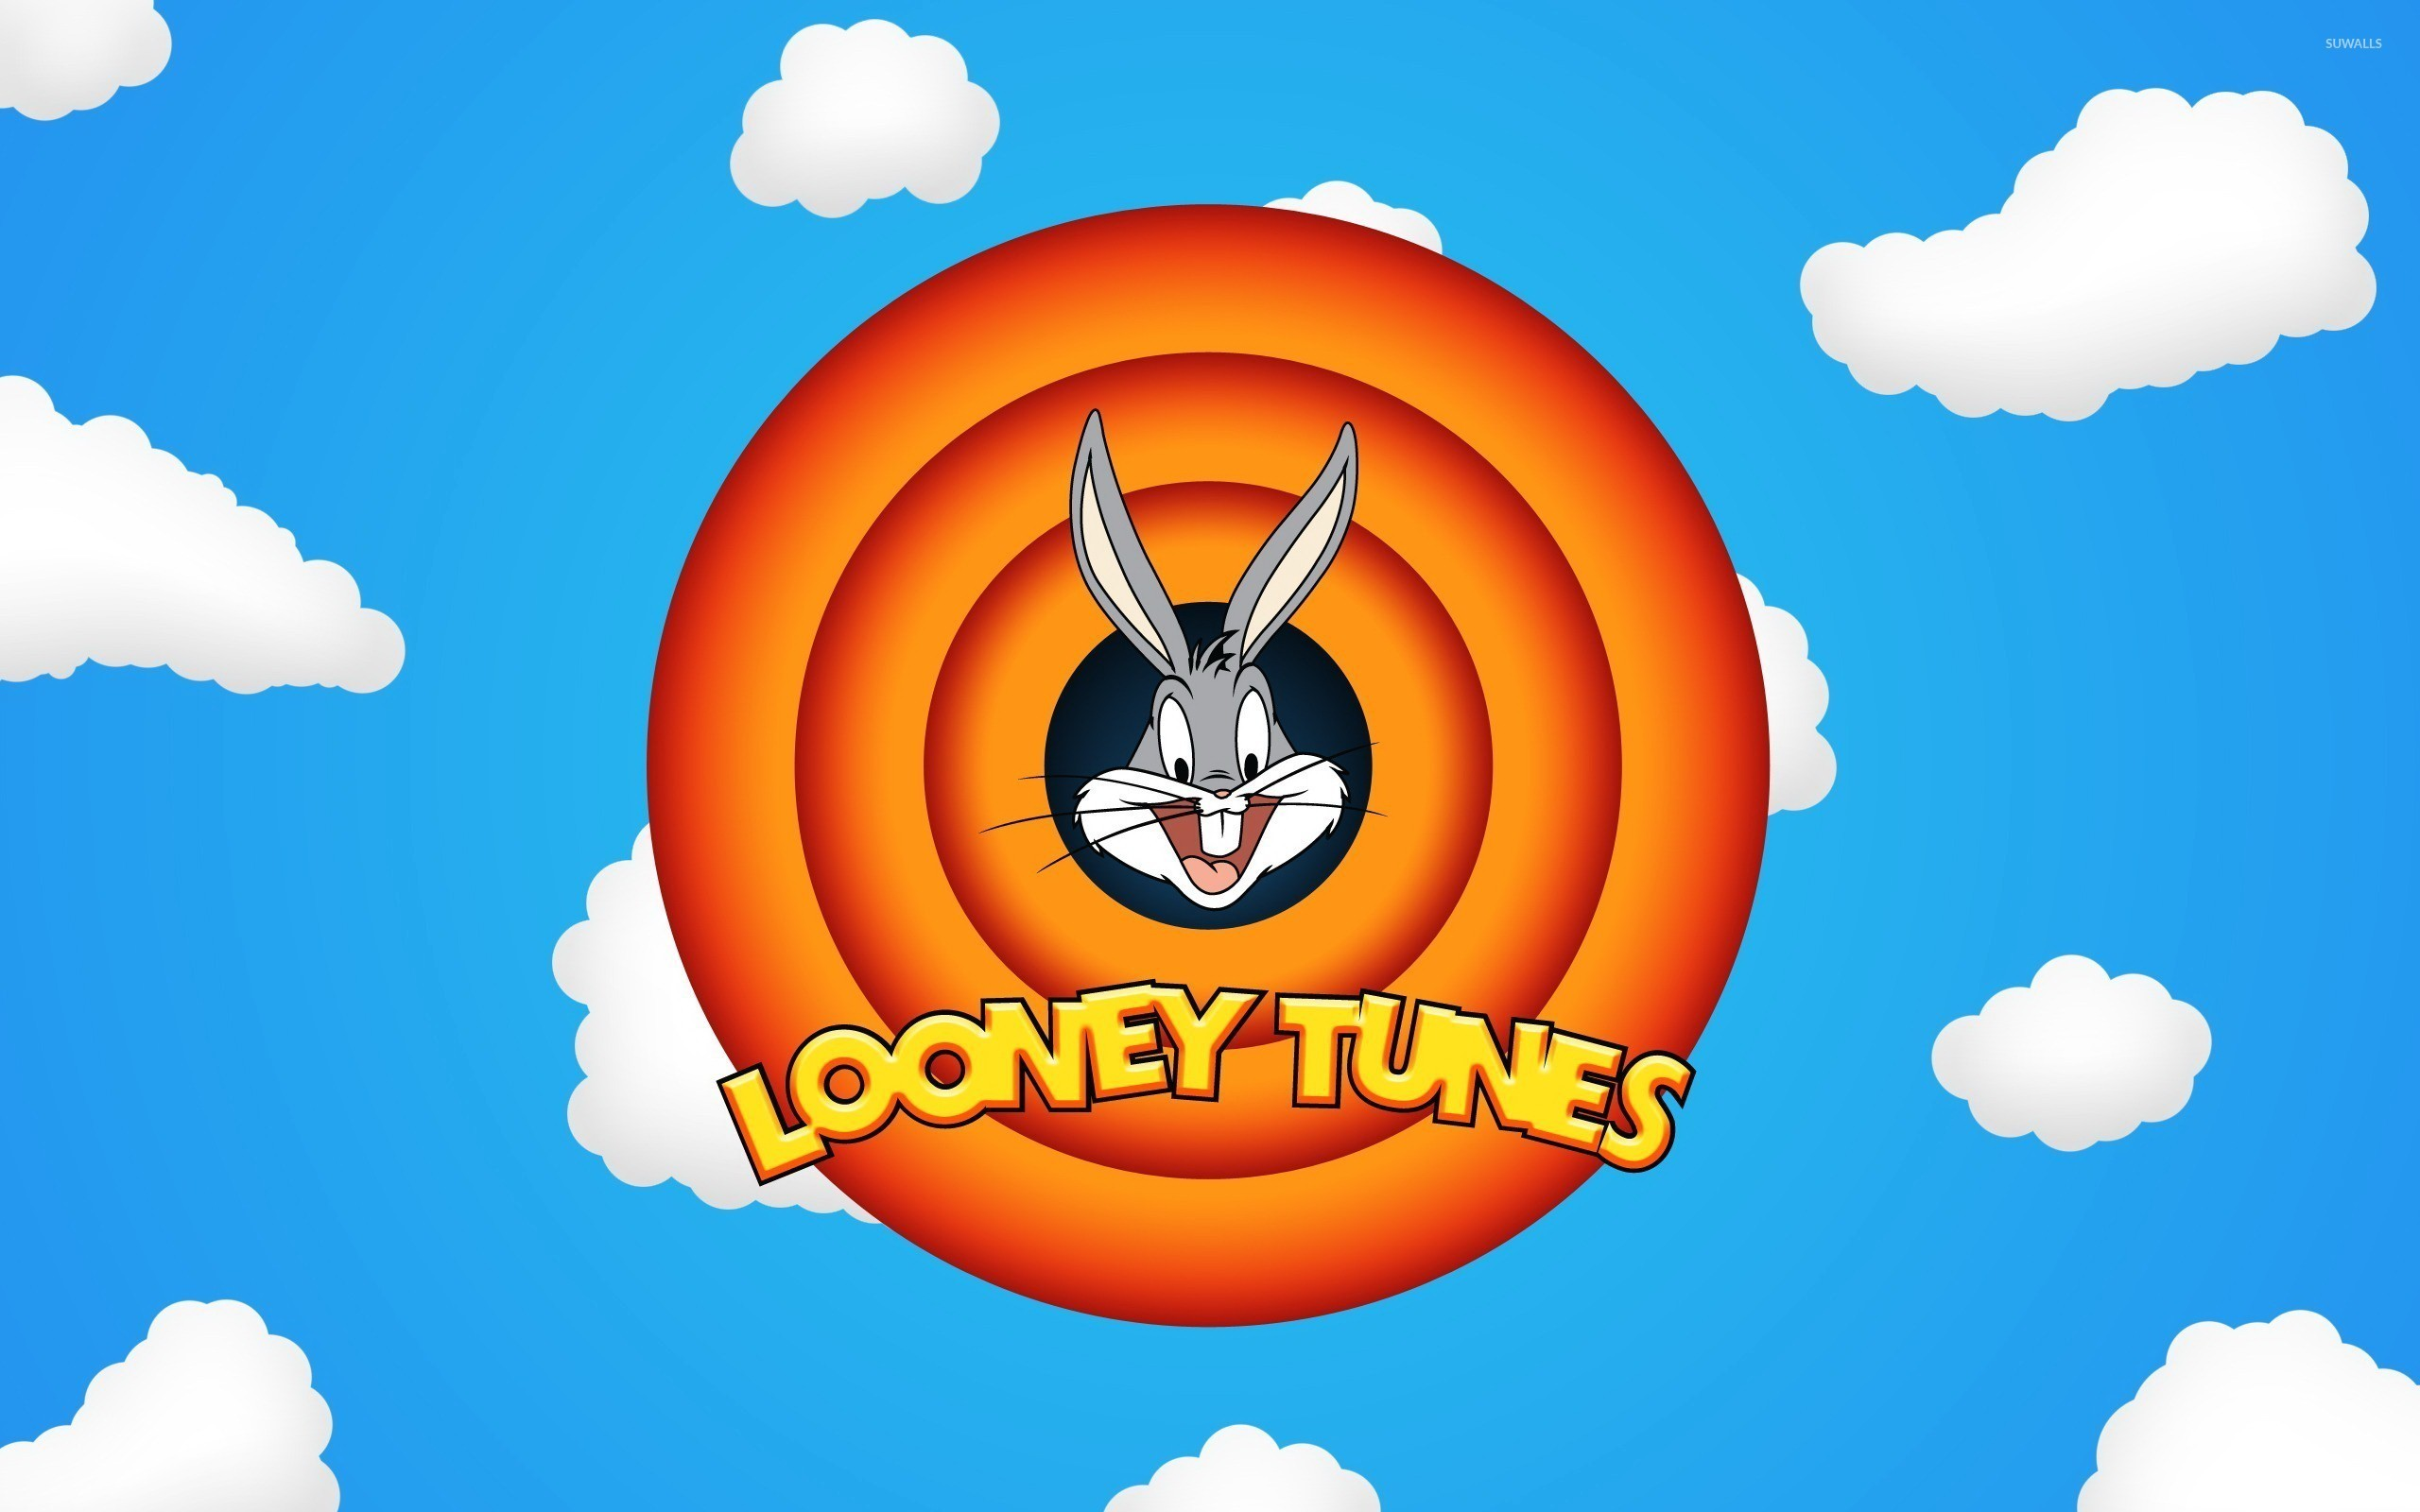 Res: 2560x1600, Bugs Bunny - Looney Tunes wallpaper